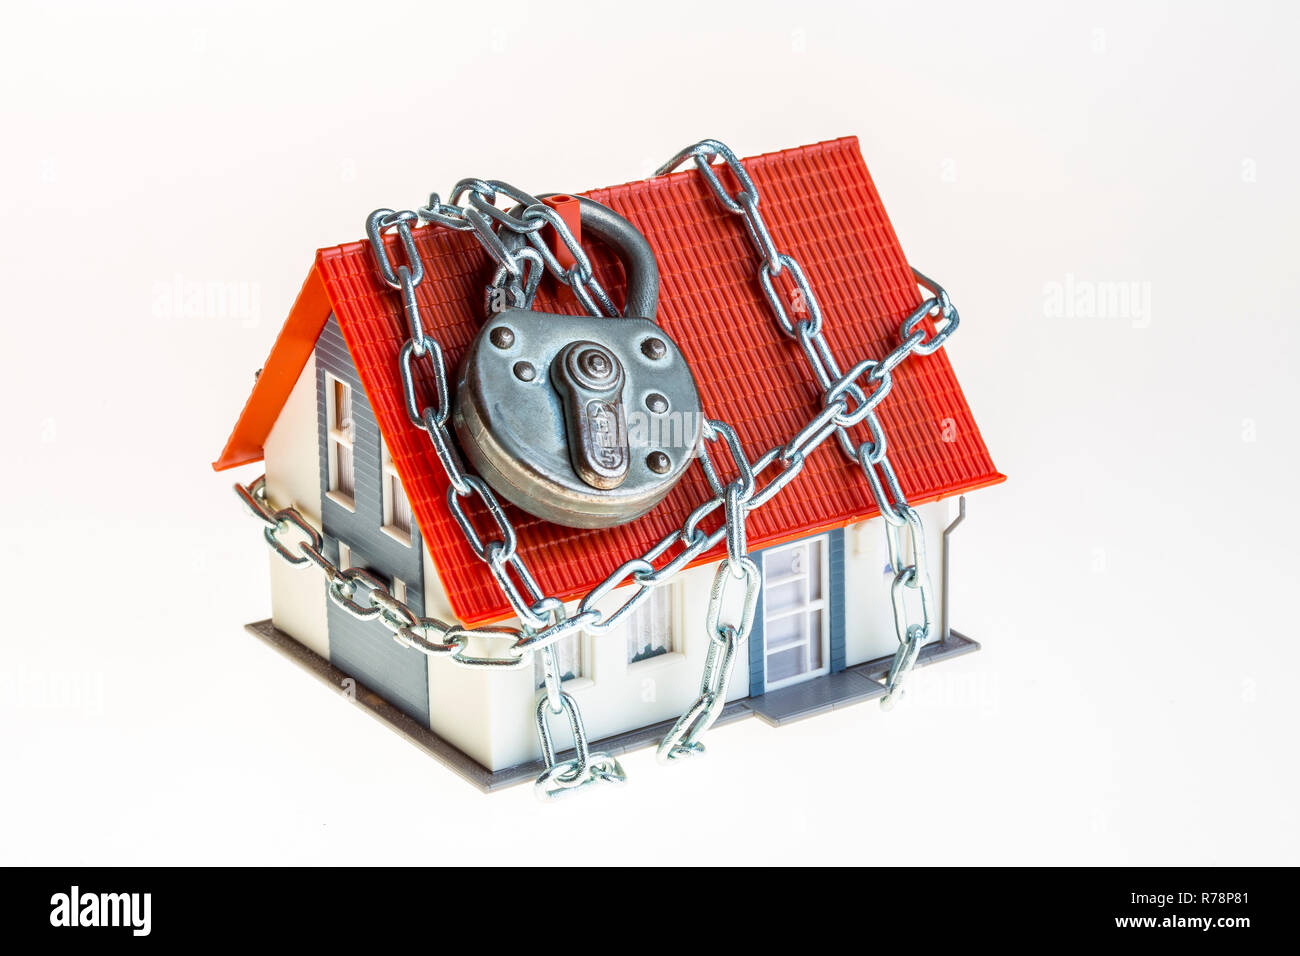 Home, model-home, intrusion protection, theft protection, security, privately owned home, symbolic - Stock Image